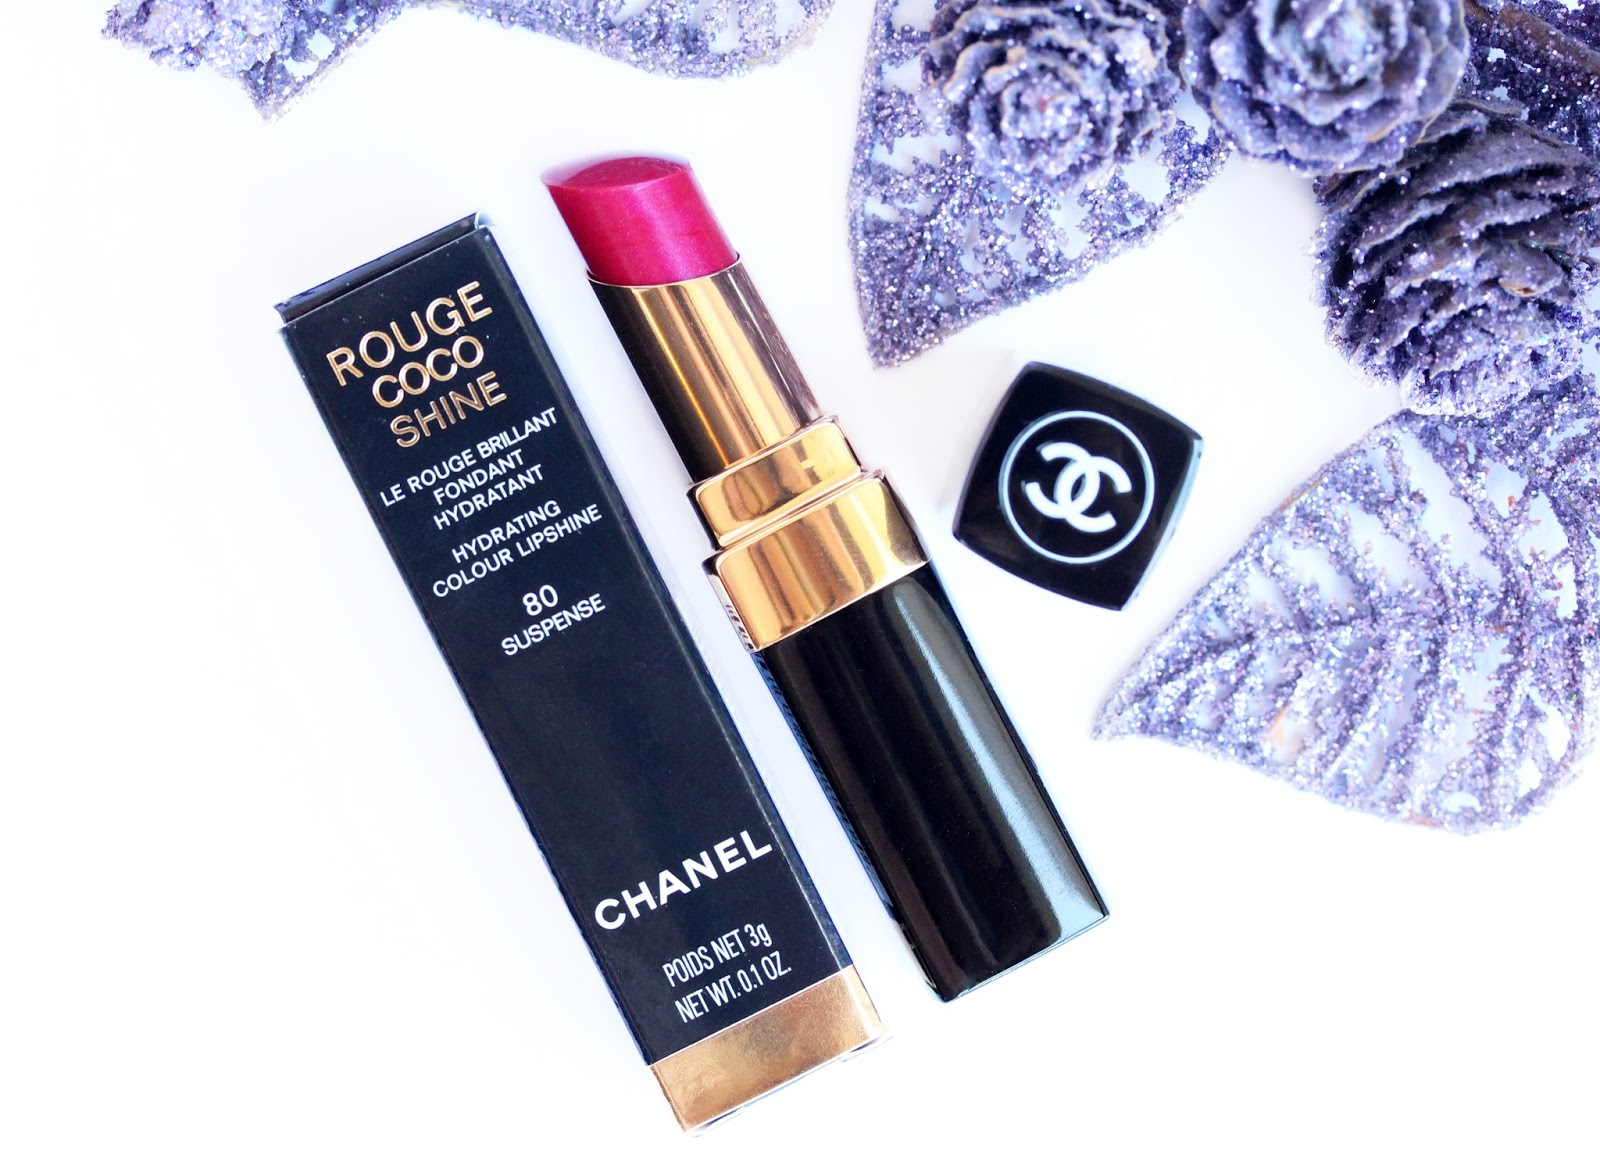 Chanel Rouge Coco Shine lipstick in 80 Suspense